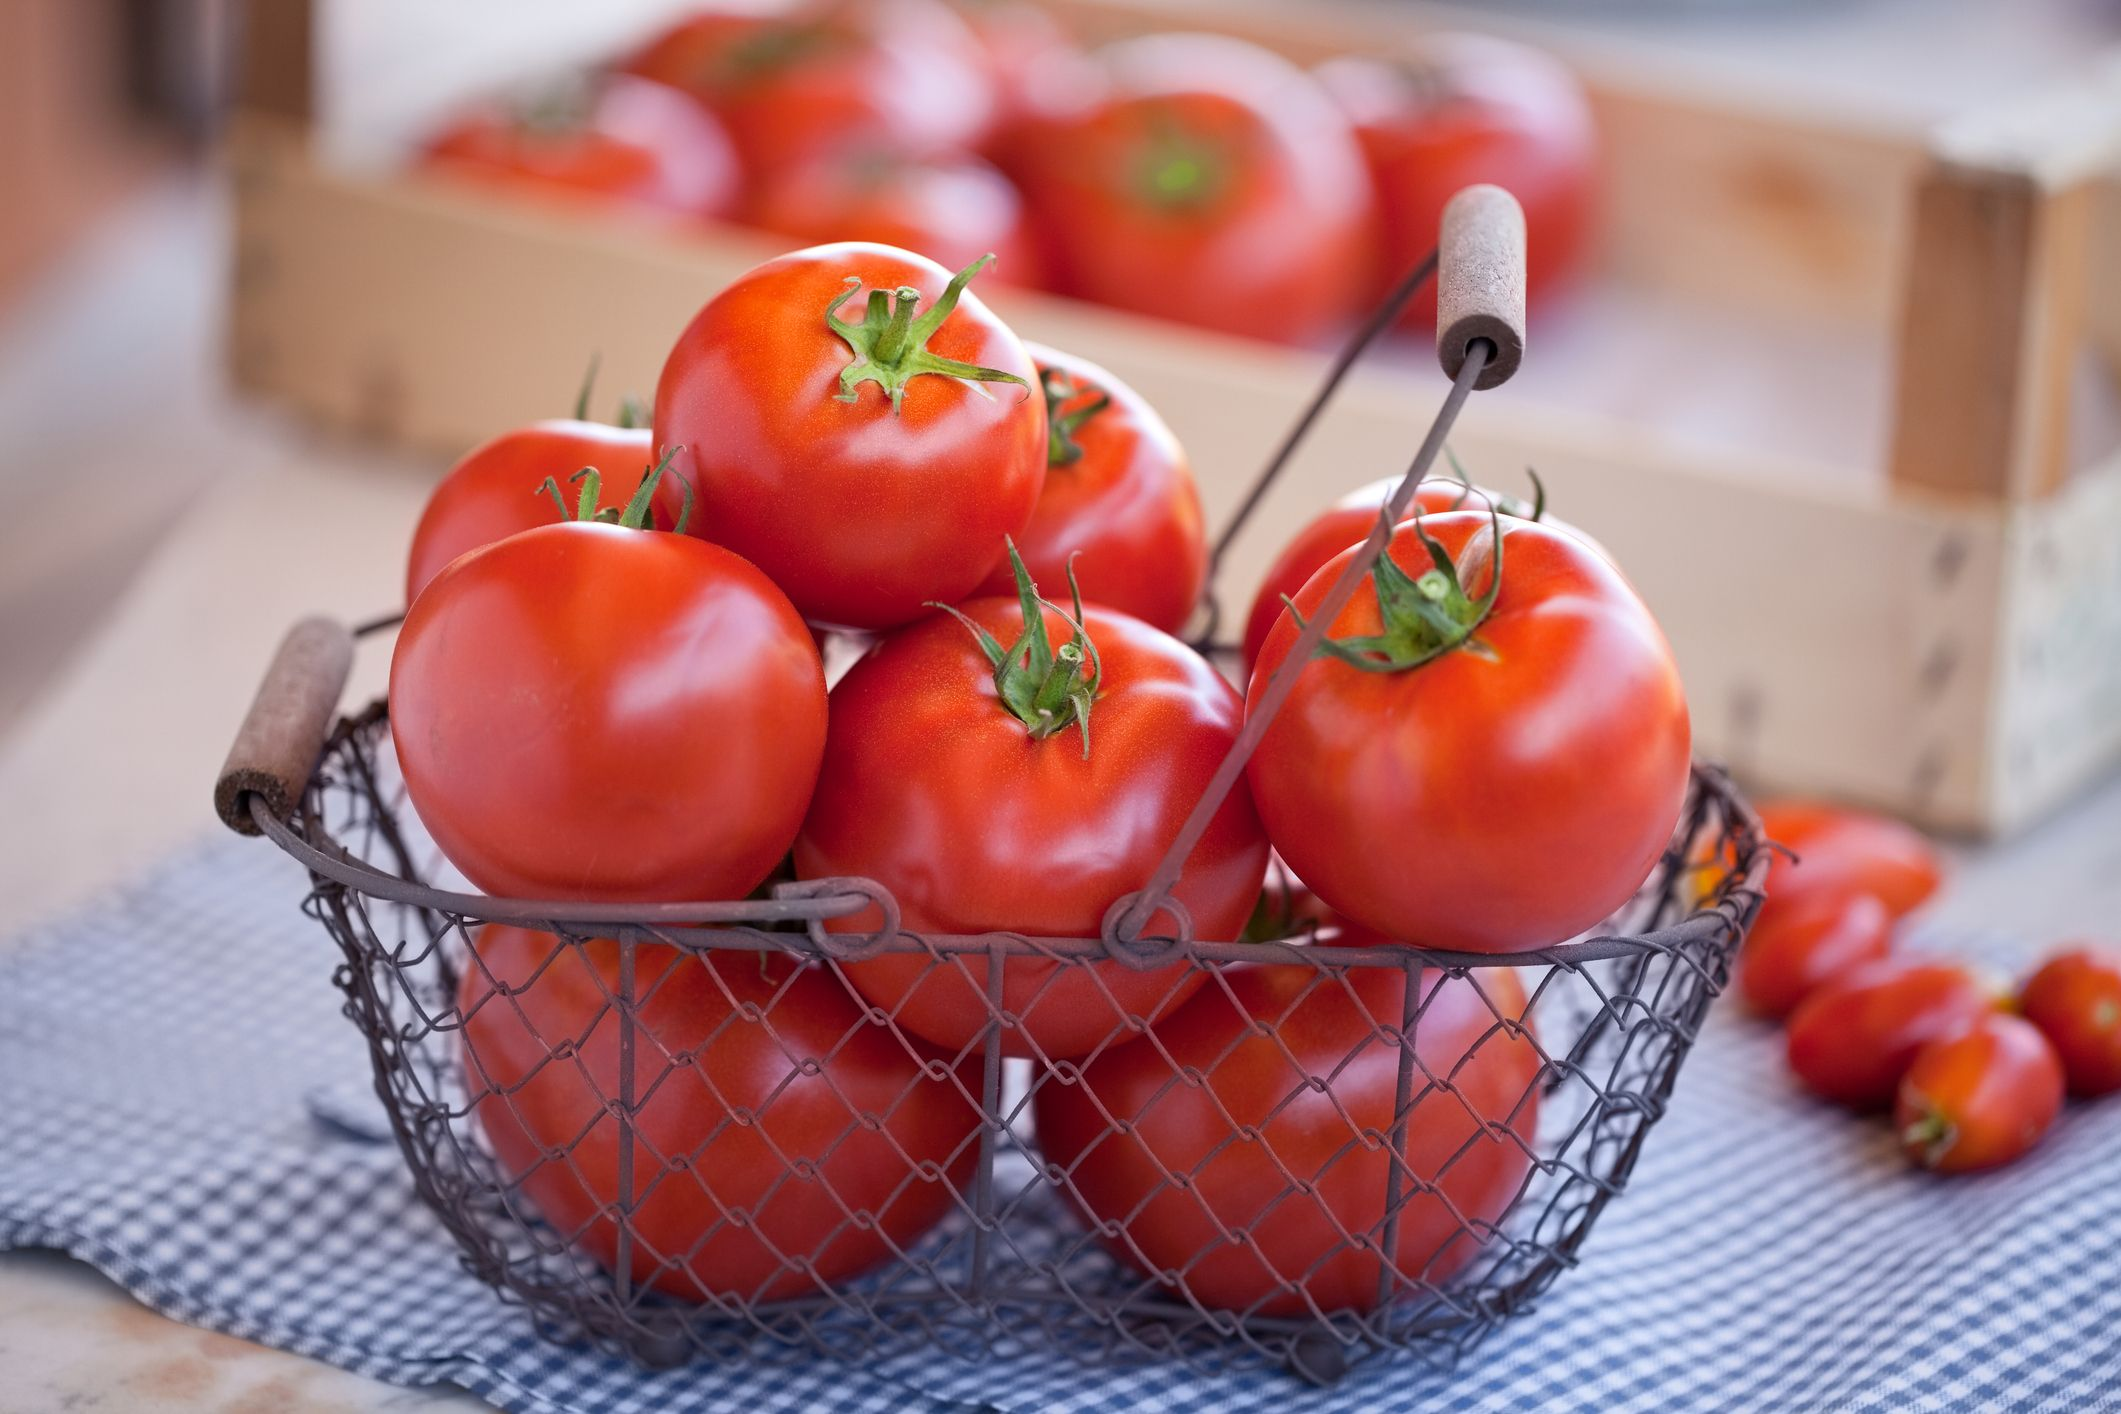 Is Tomato a Fruit or Vegetable? Both, Depending on Science